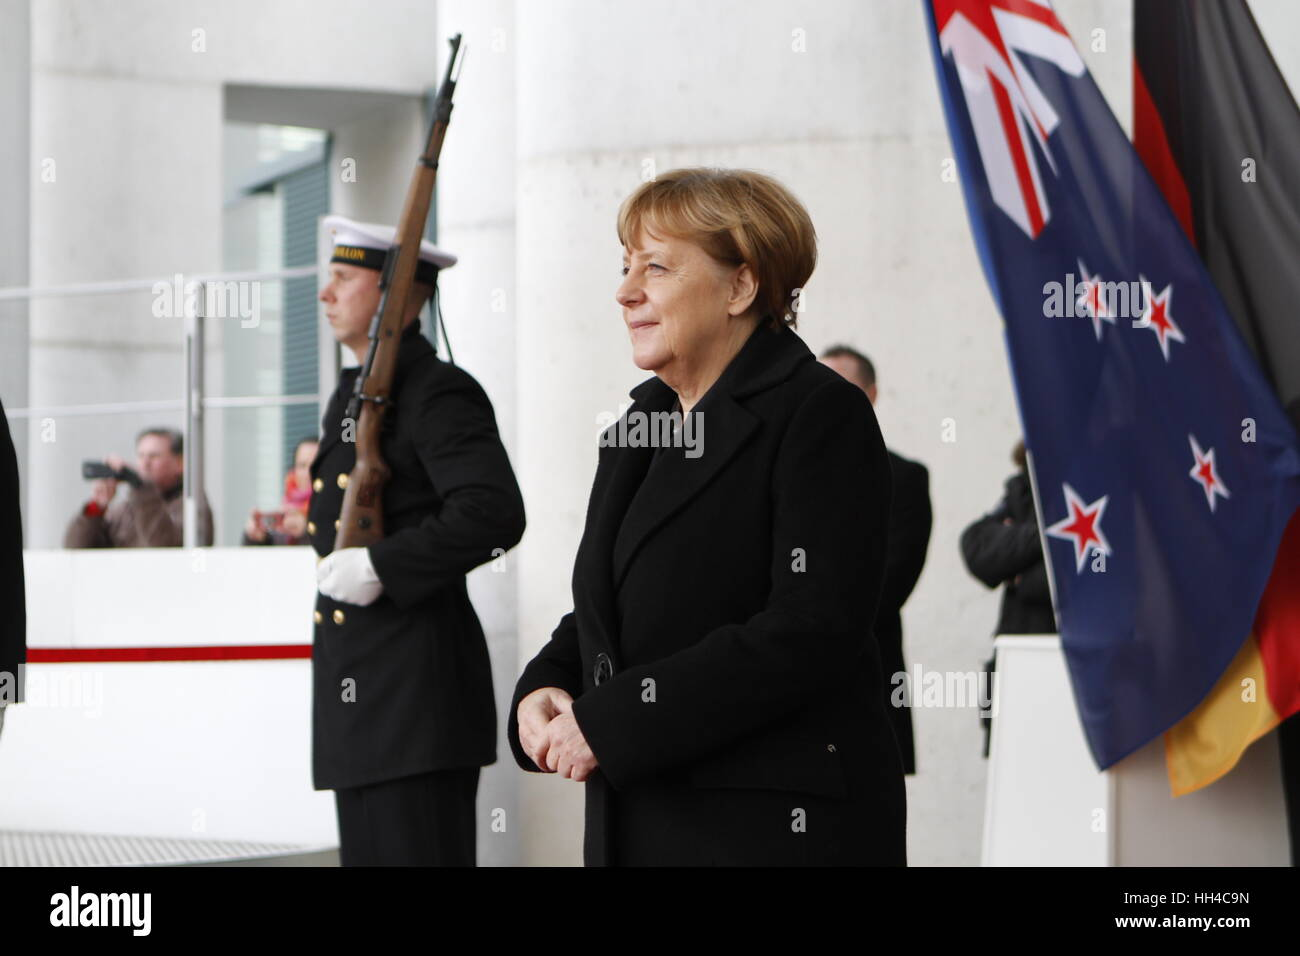 Berlin, Germany. 16th Jan, 2017. The photo shows Federal Chancellor Angela Merkel in front of the Federal Chancellery. - Stock Image